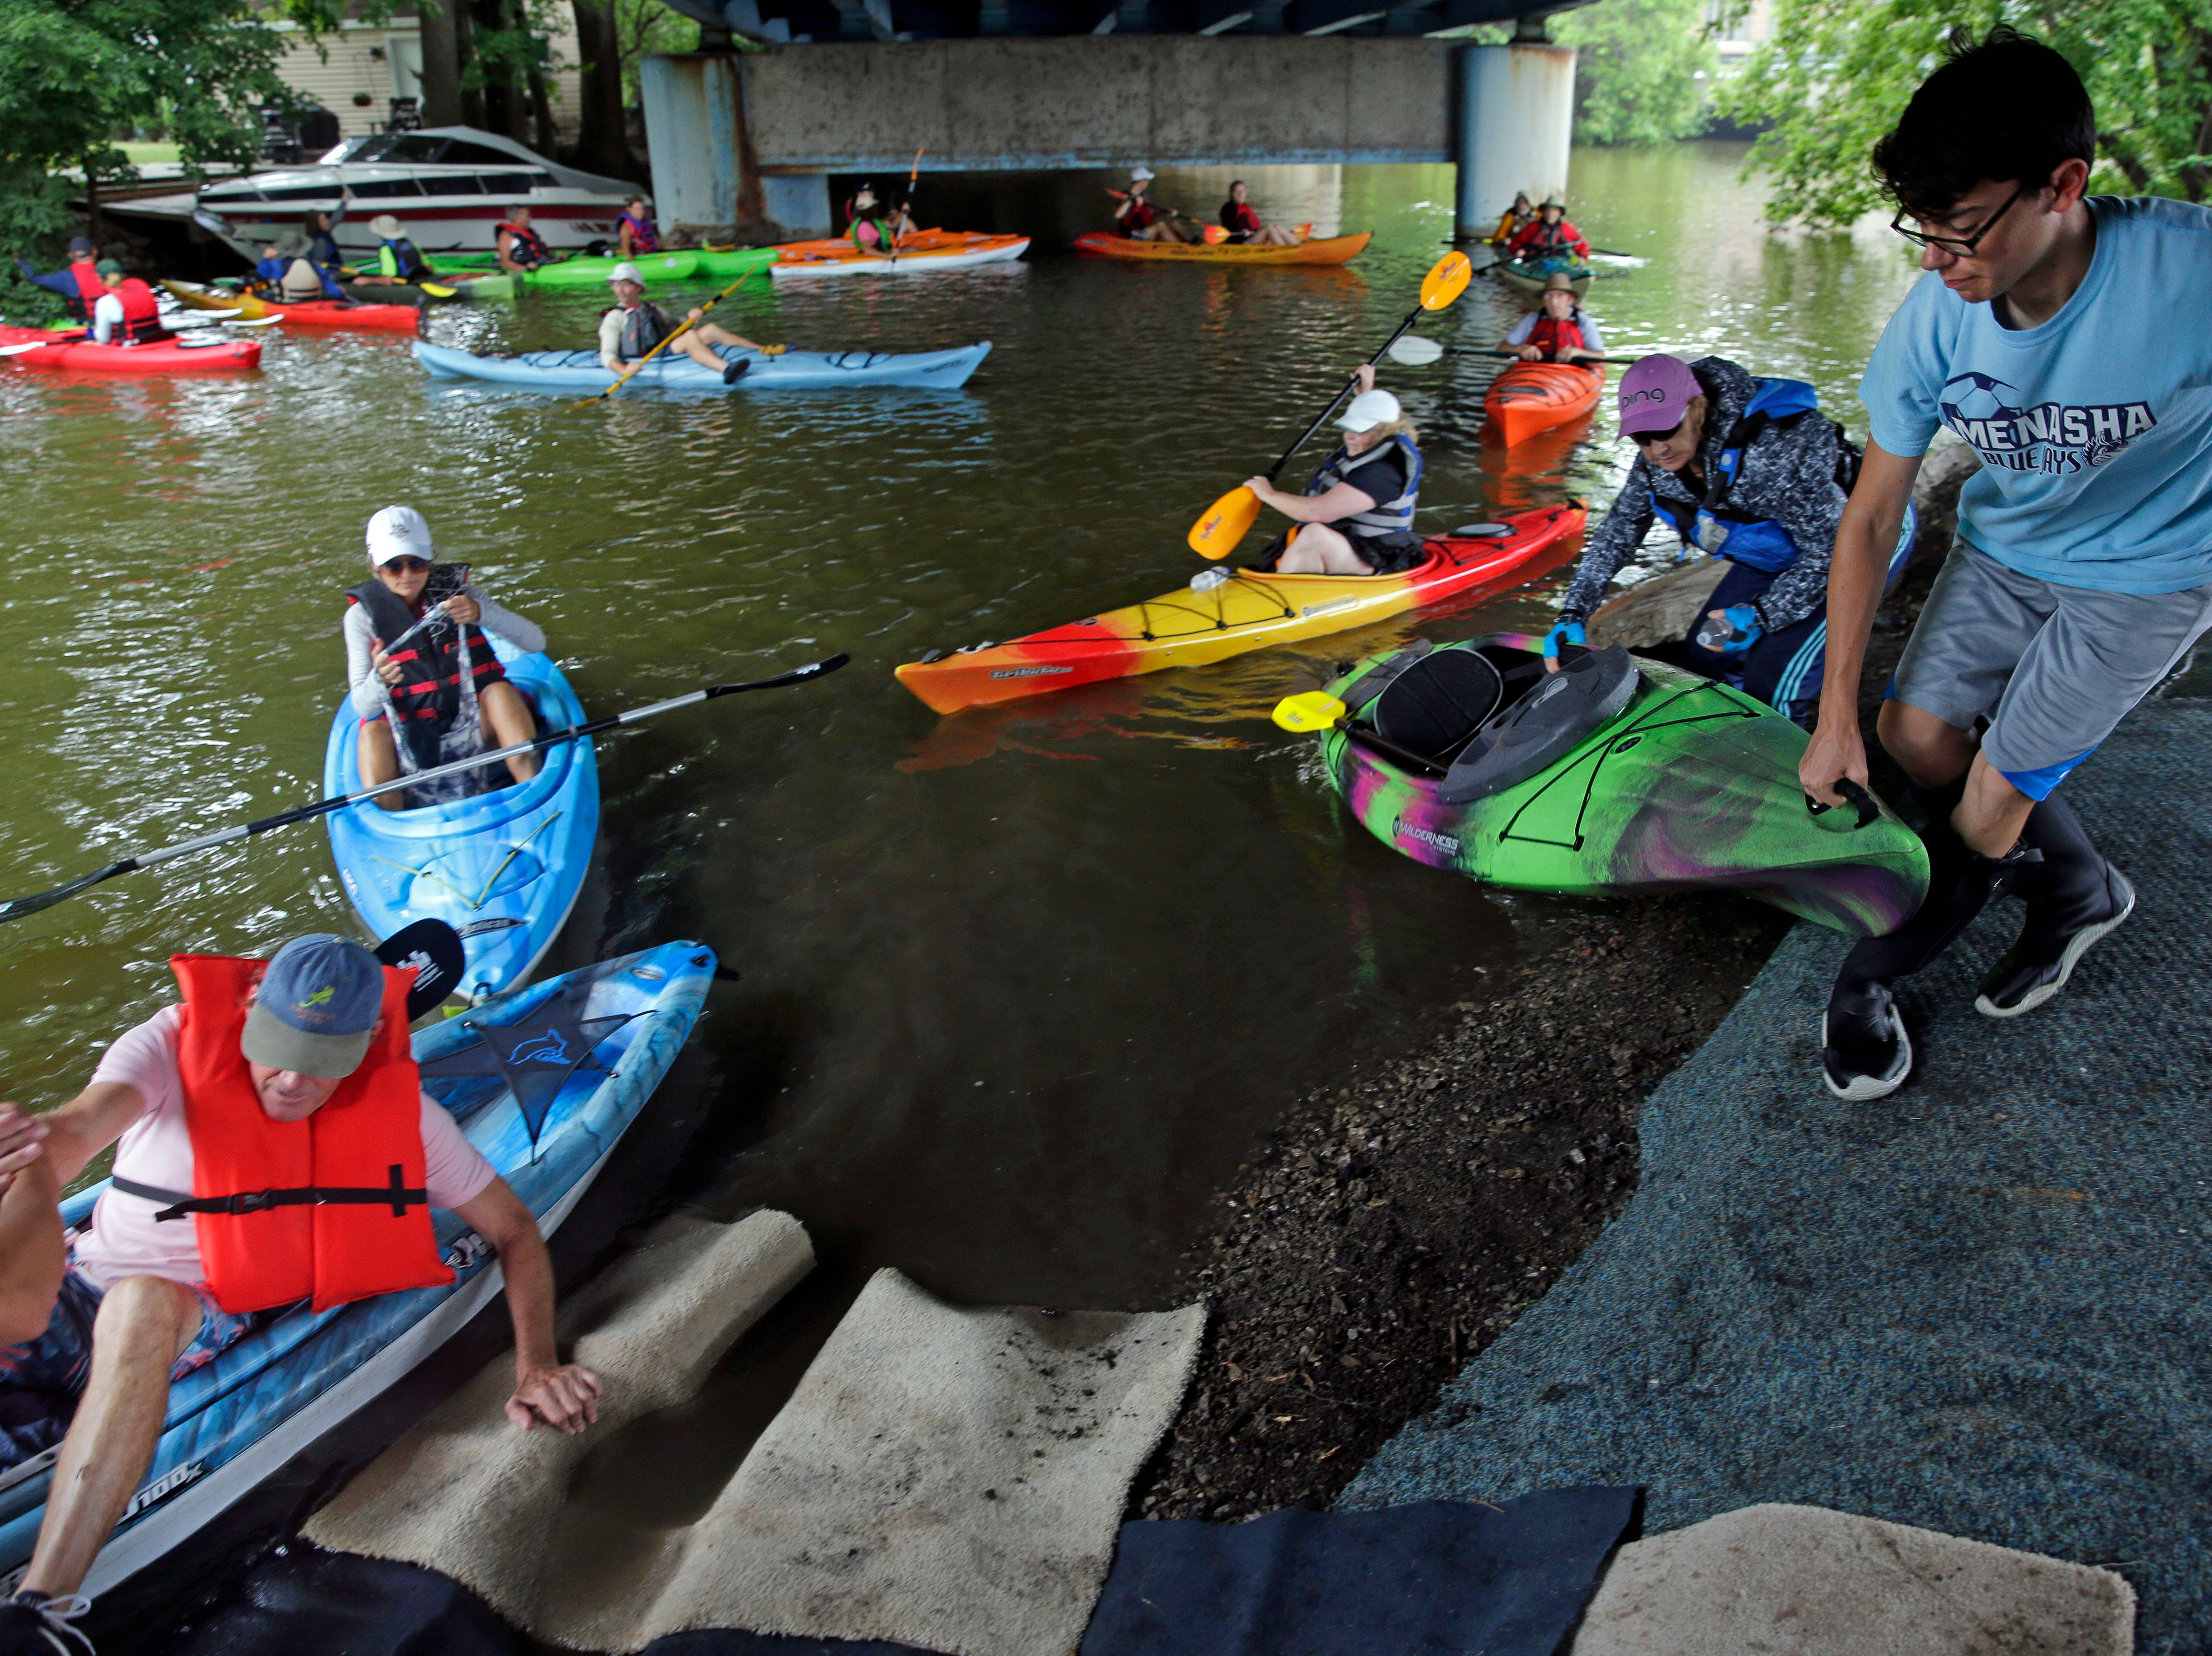 Members of the Menasha High School soccer team help with a portage as the Park-to-Park Paddle takes place Saturday, July 21, 2018, in Menasha, Wis.